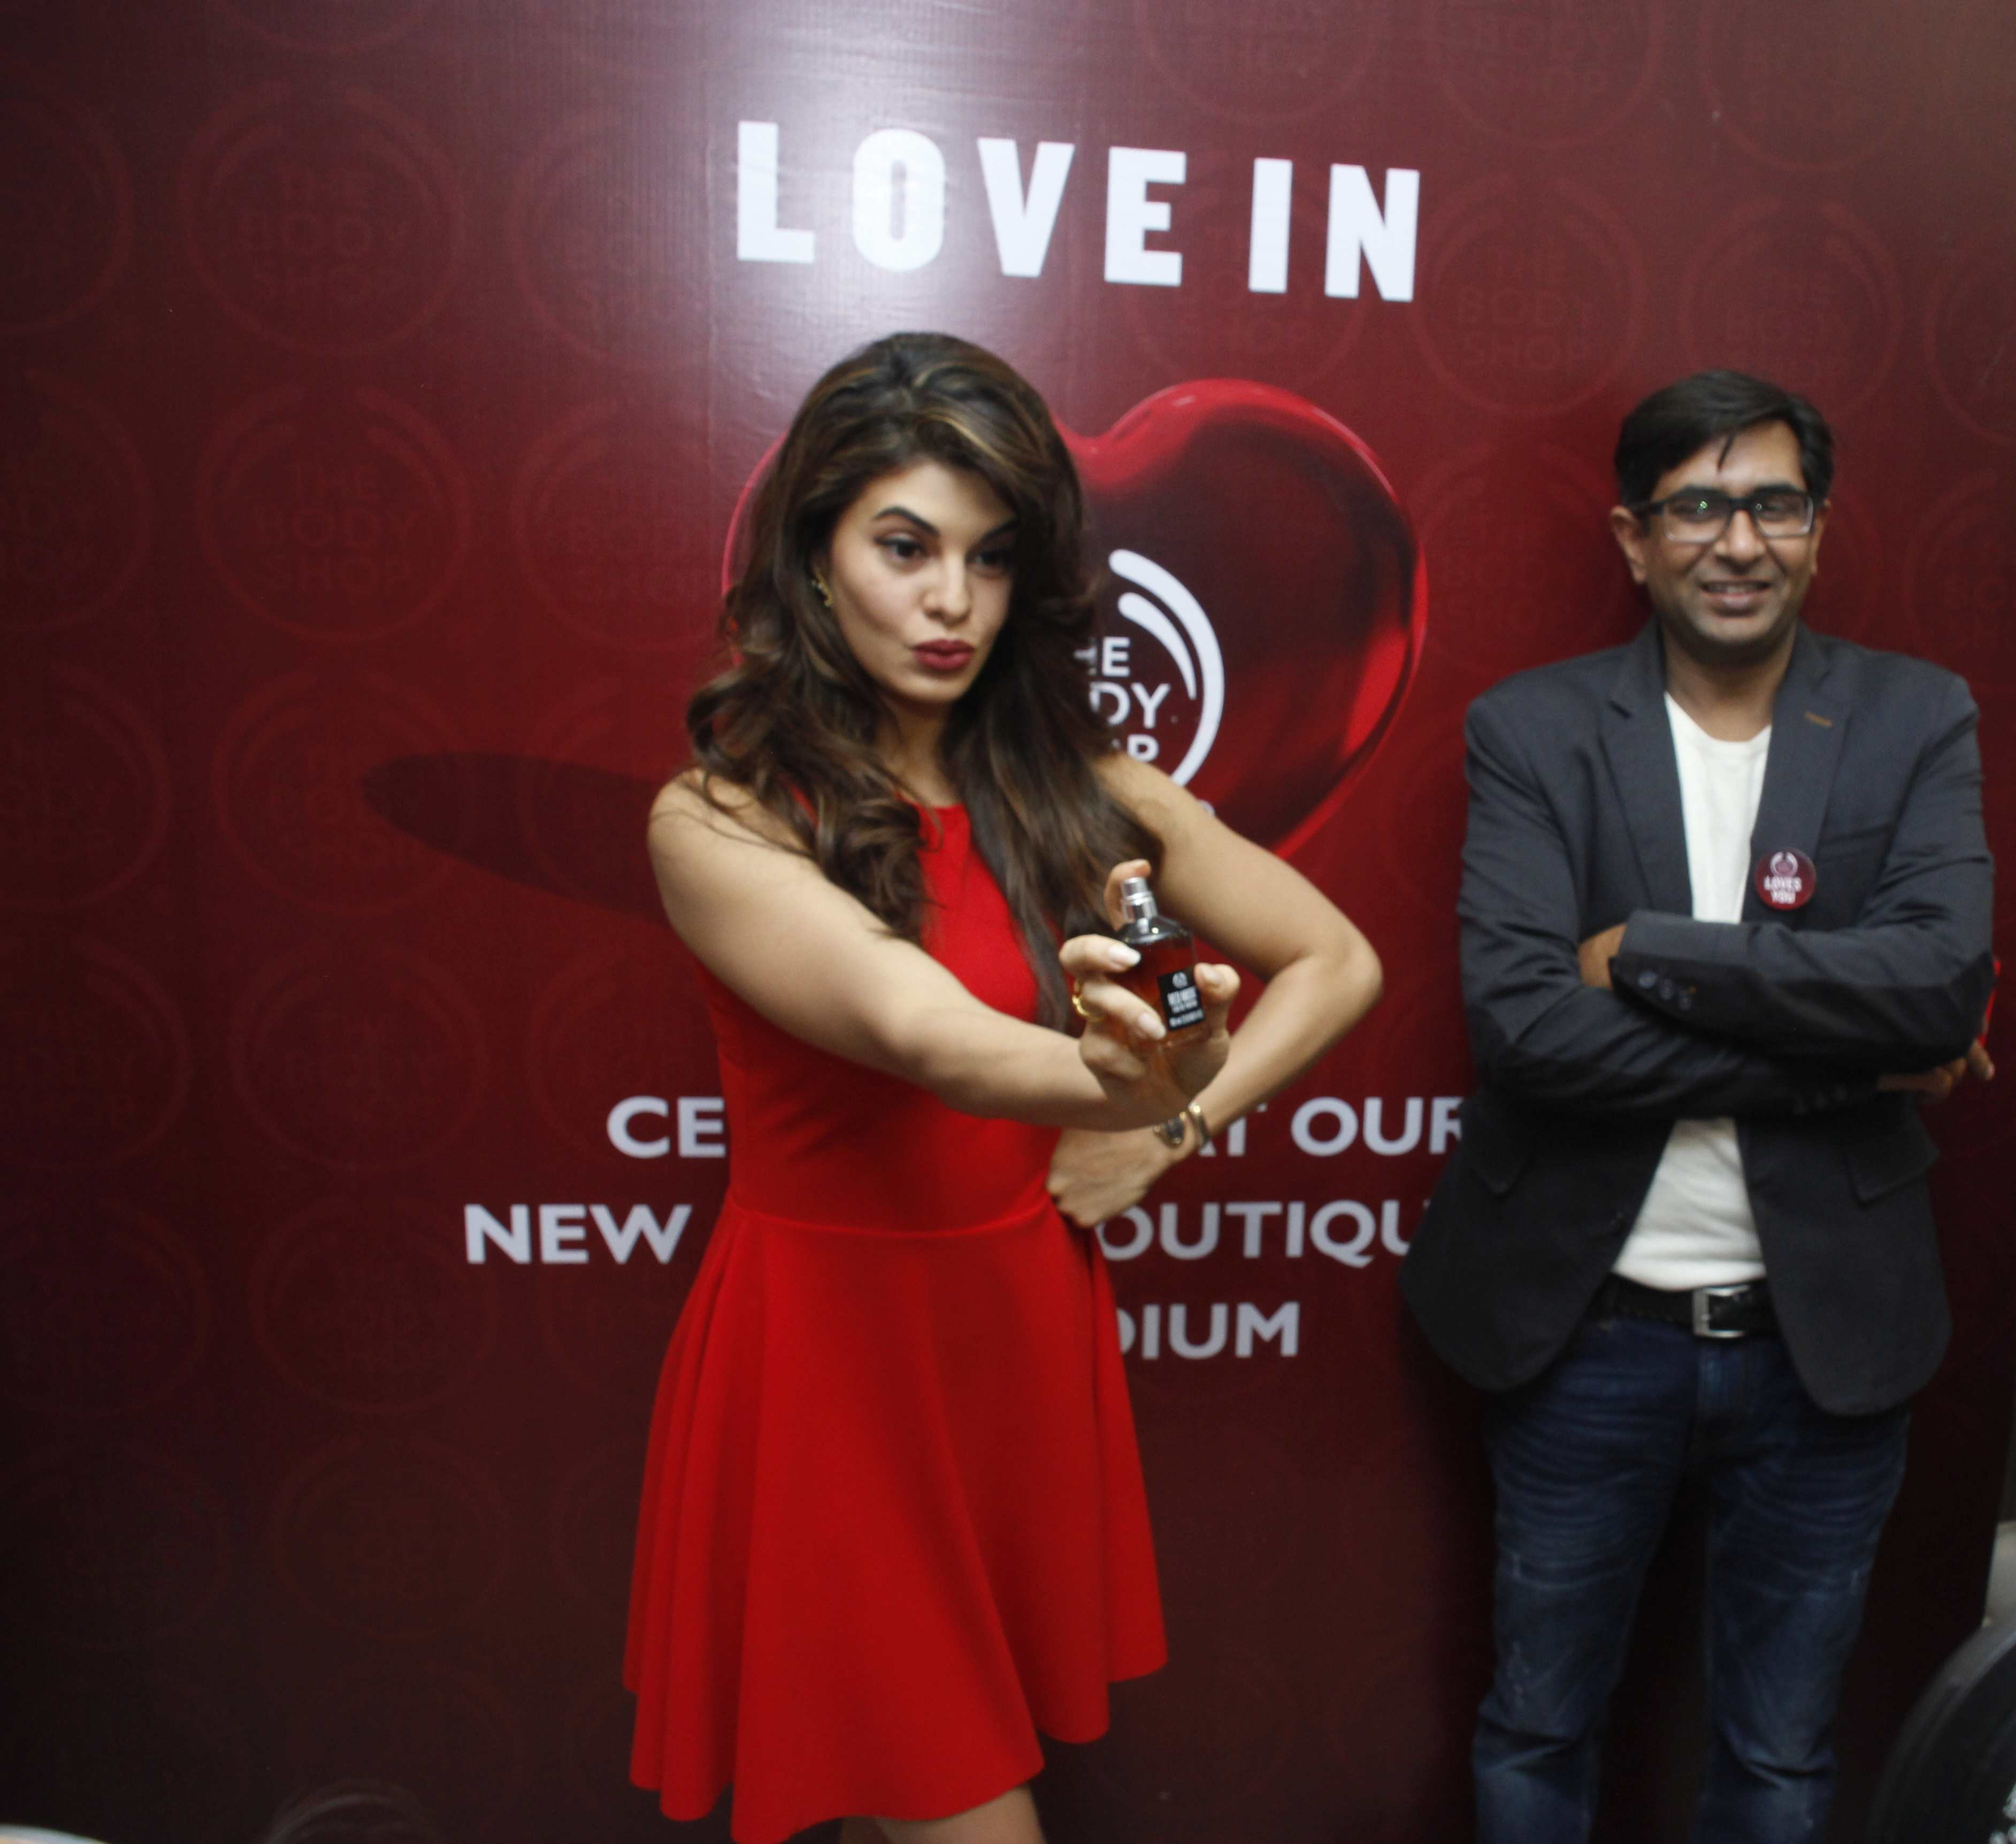 Jacqueline Fernandez Varun Sharma The General Manager The Body Dhop India At The Launch Of